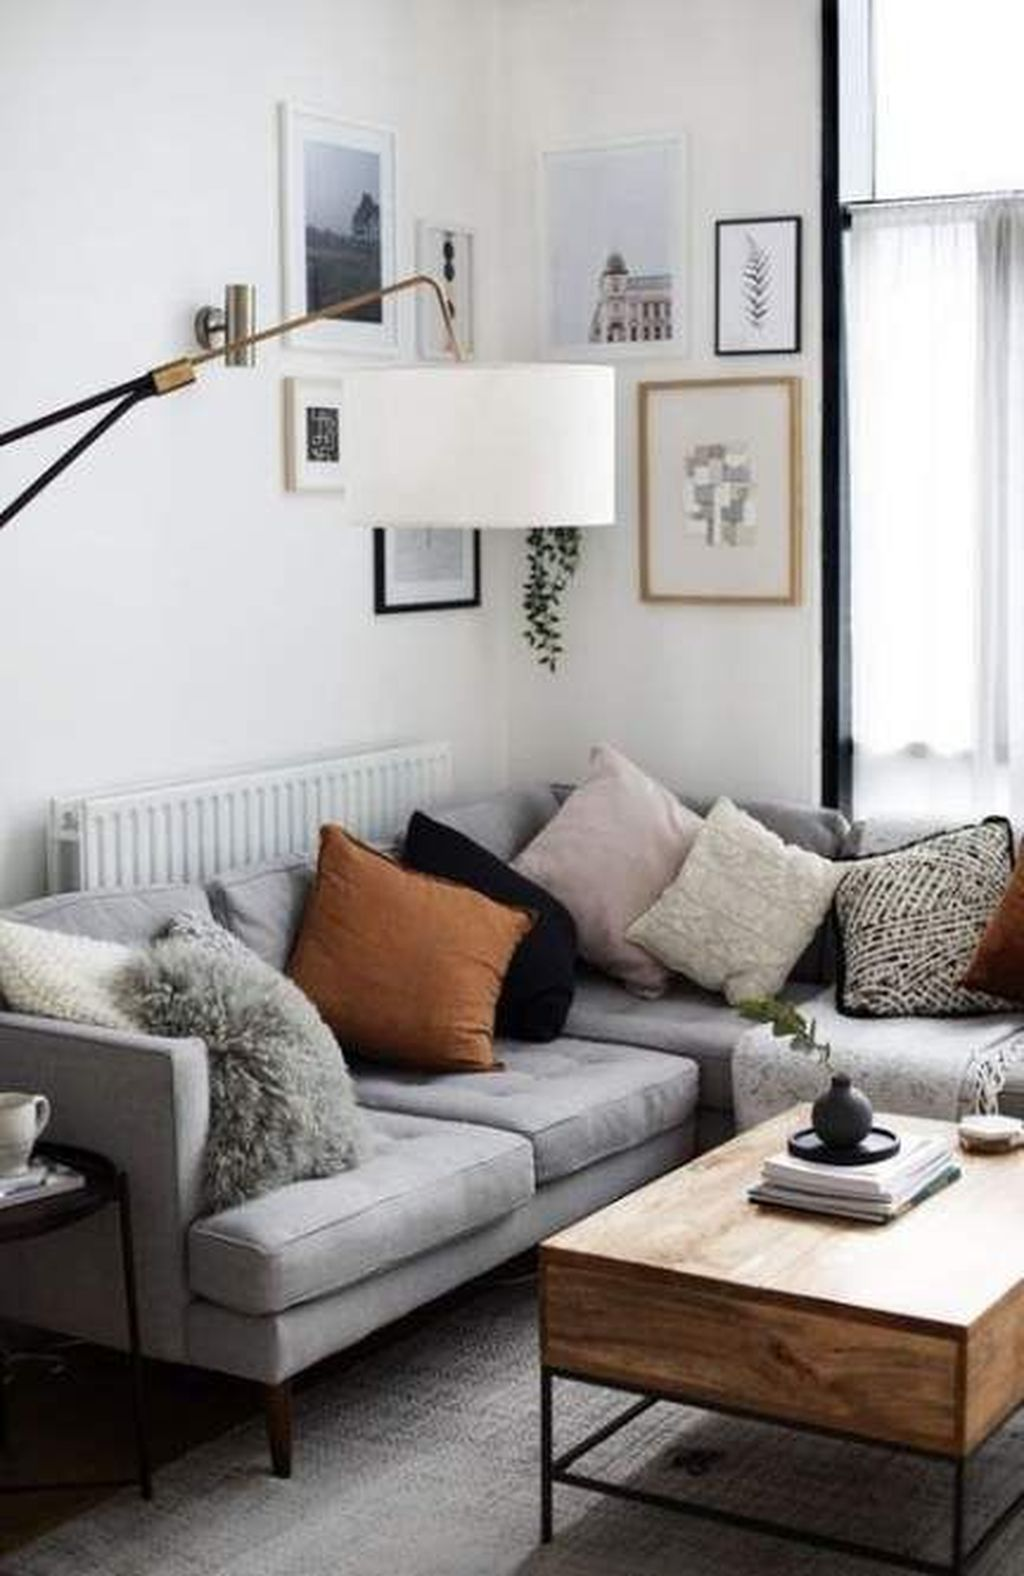 33 Awesome Small Space Living Room Decor Ideas En 2020 Avec